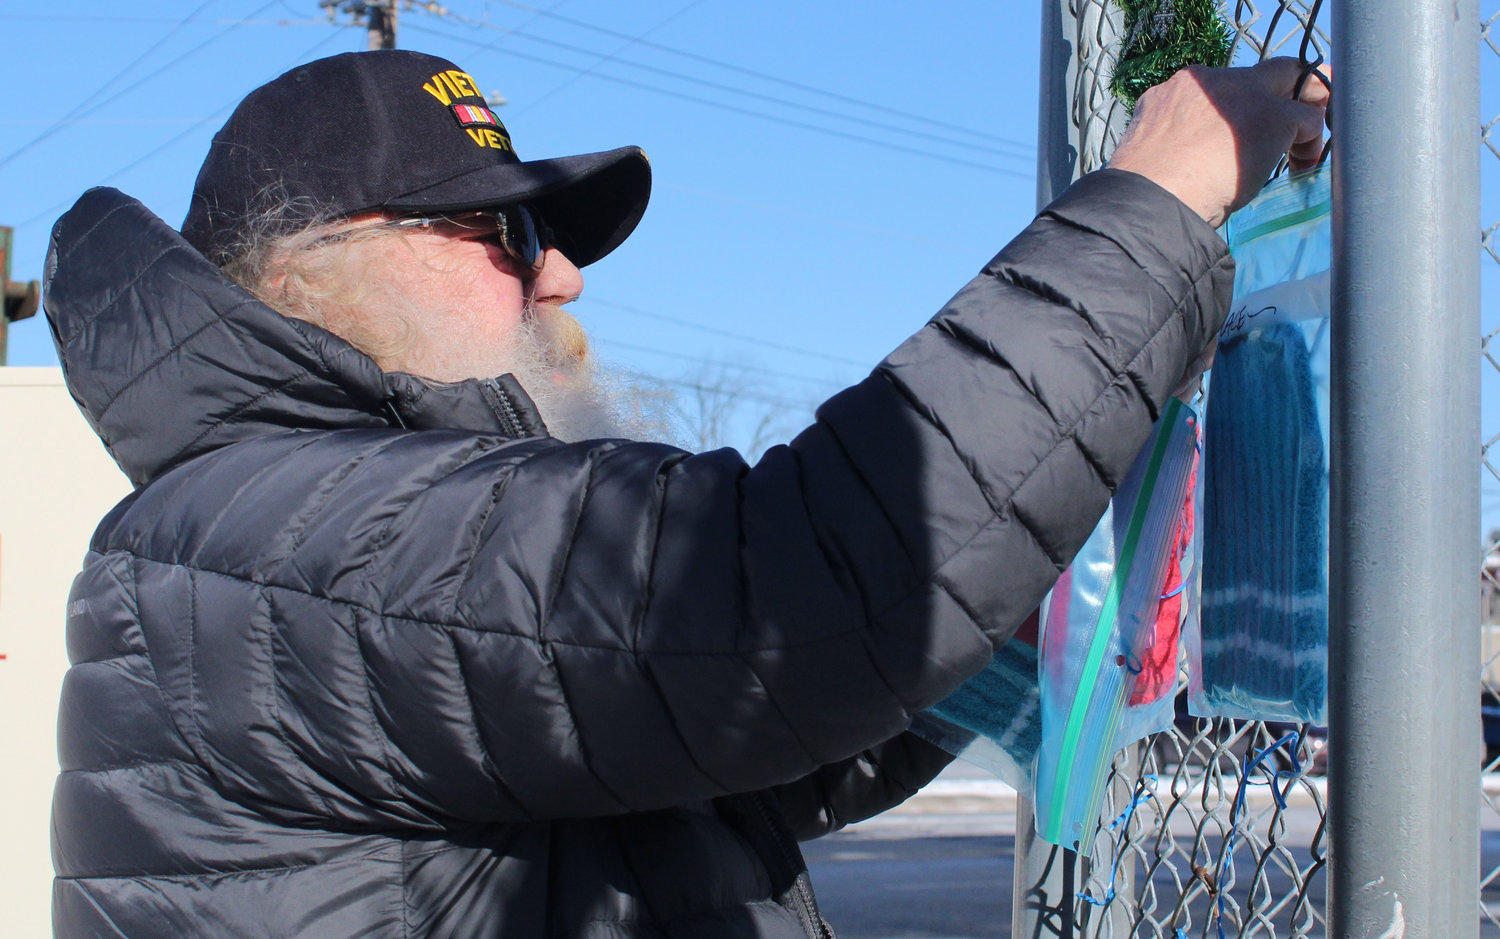 For the past several weeks, Dave Lidle has been hanging hats, gloves, socks and scarves outside the entrance to the subway near Karns for people to take for free.